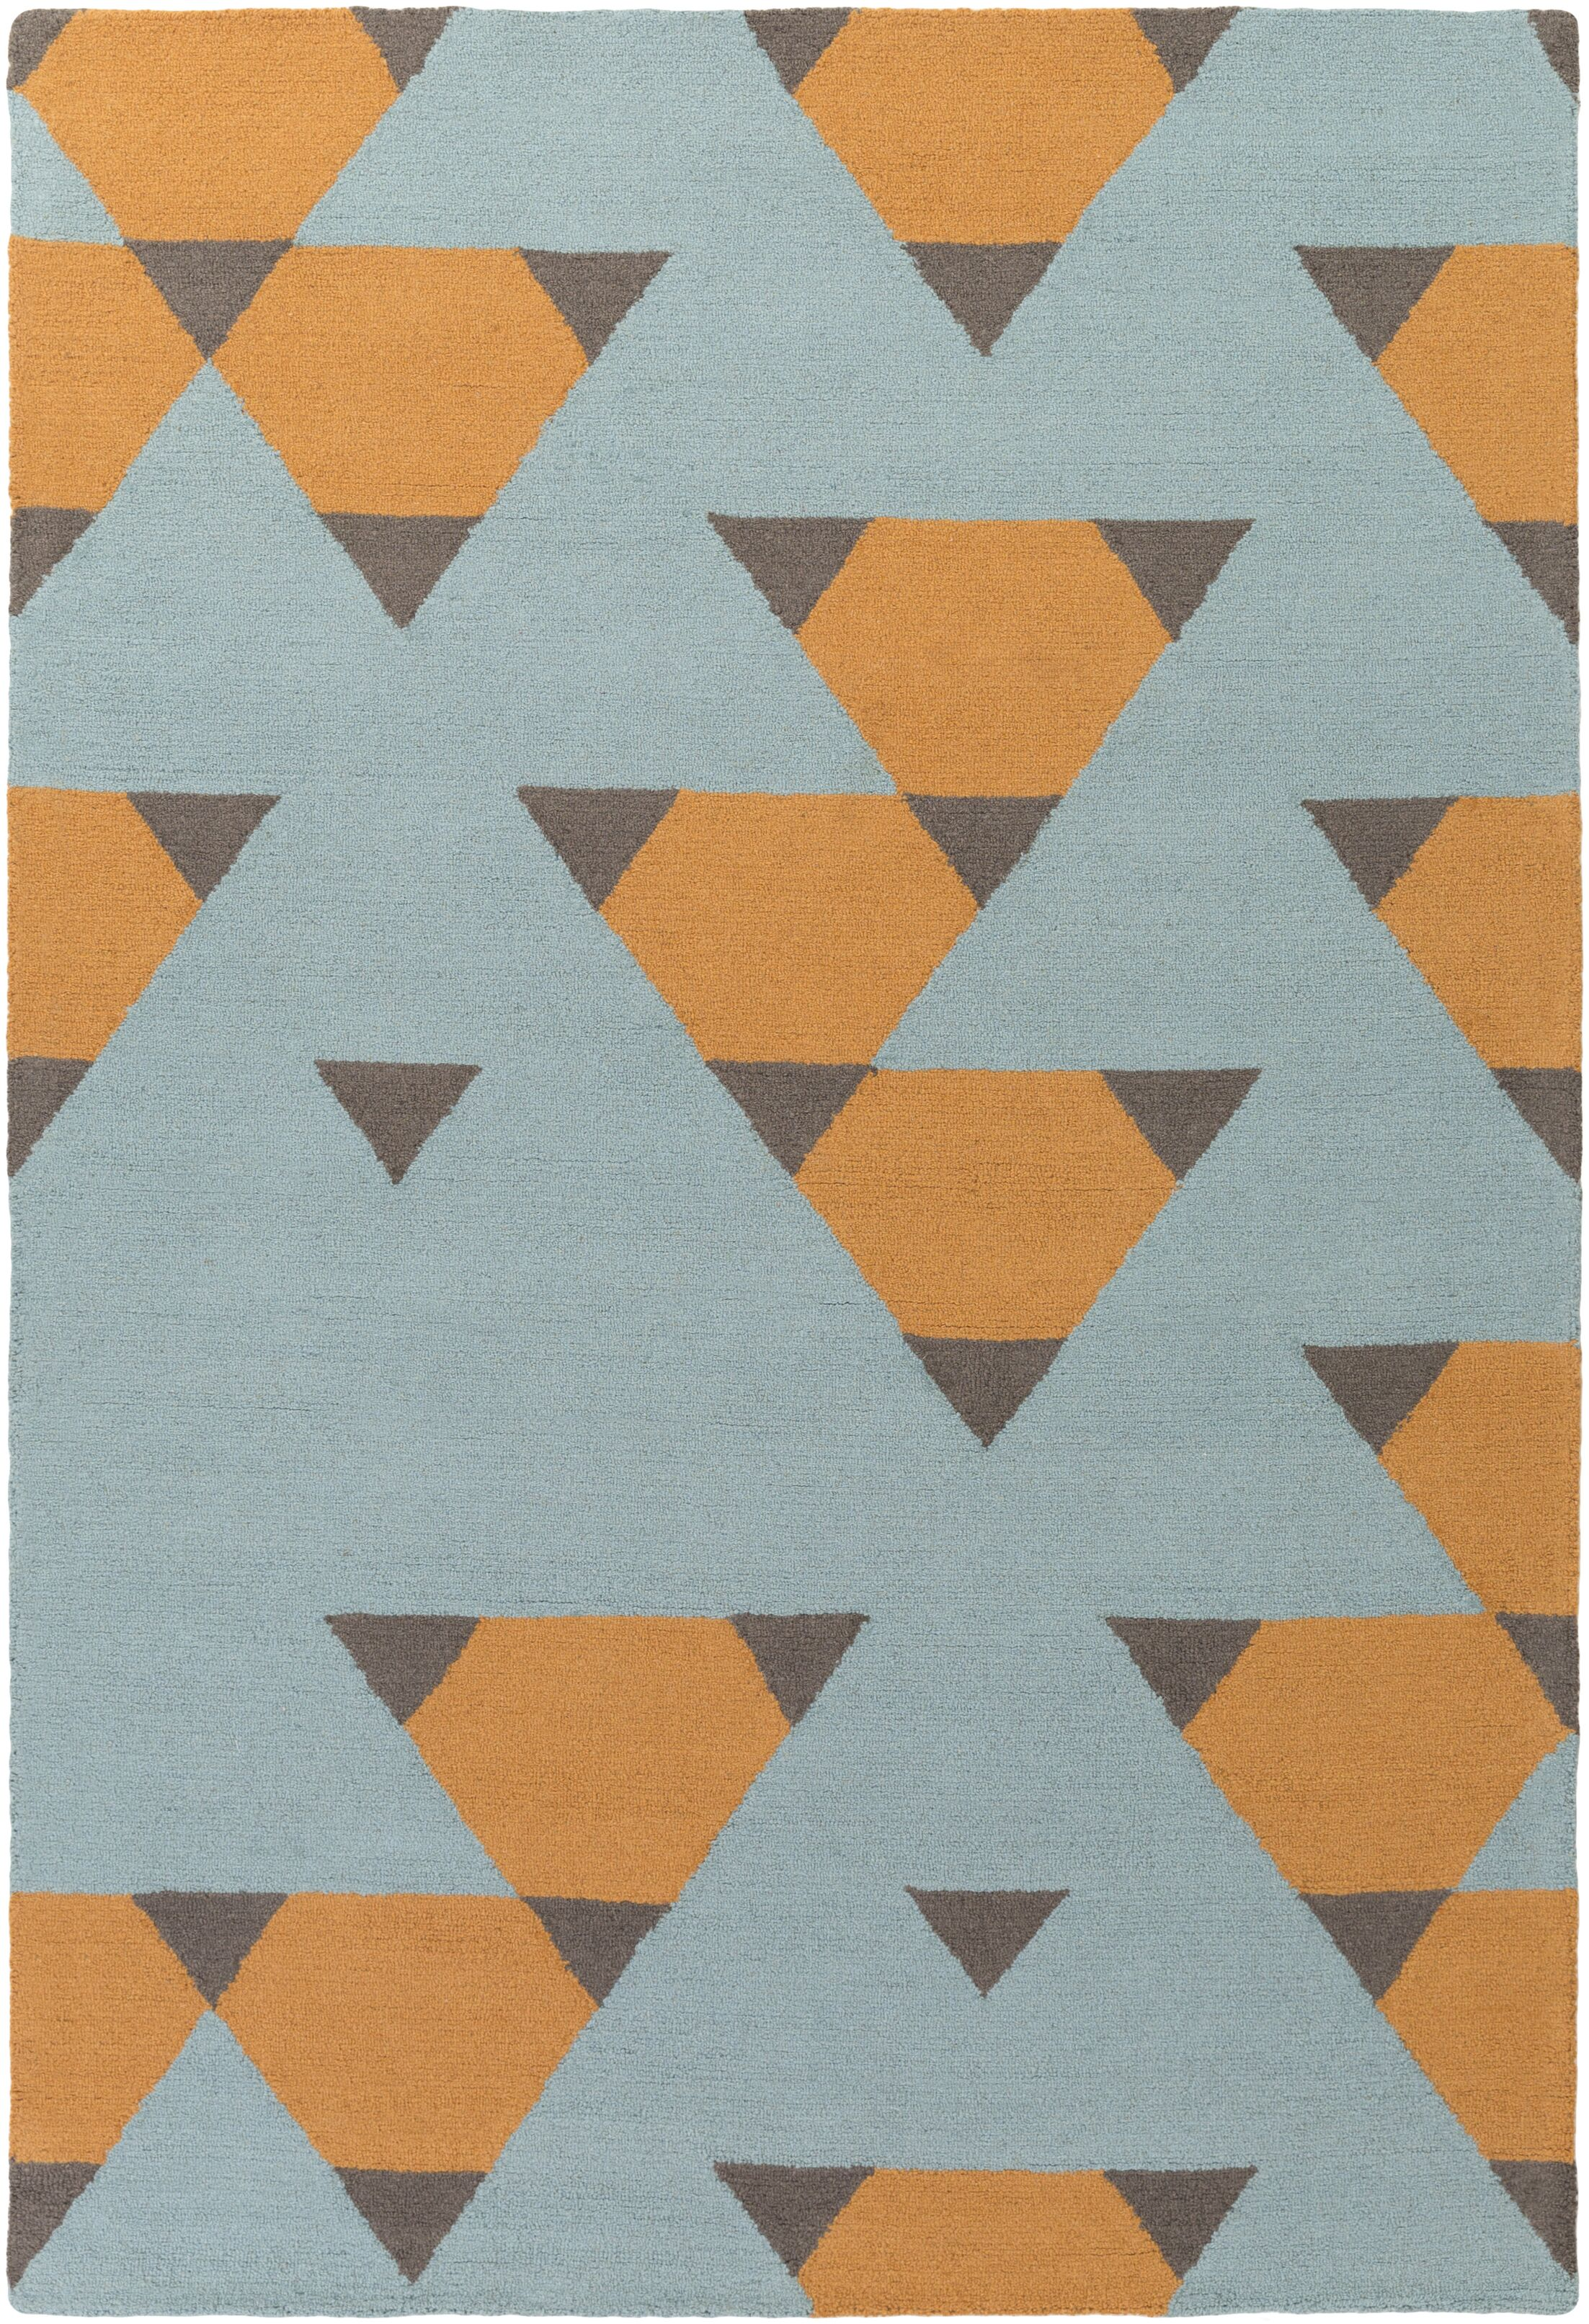 Youngquist Hand-Crafted Orange, Aqua/Gray Area Rug Rug Size: Rectangle 8' x 11'